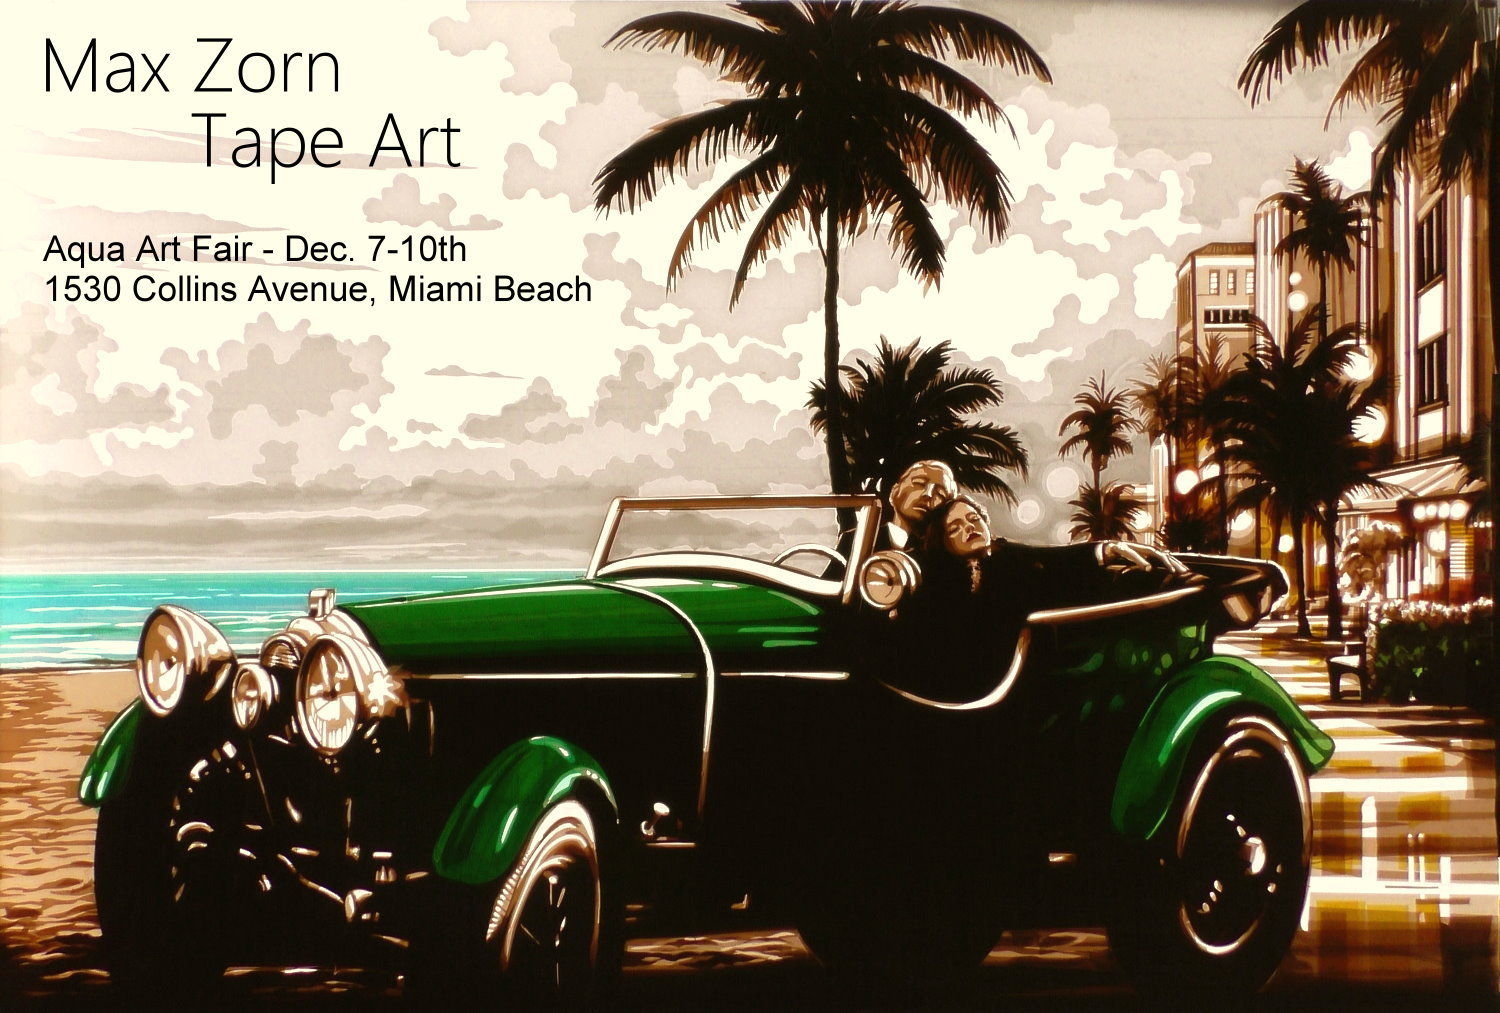 Miami Art Basel tape art Max Zorn